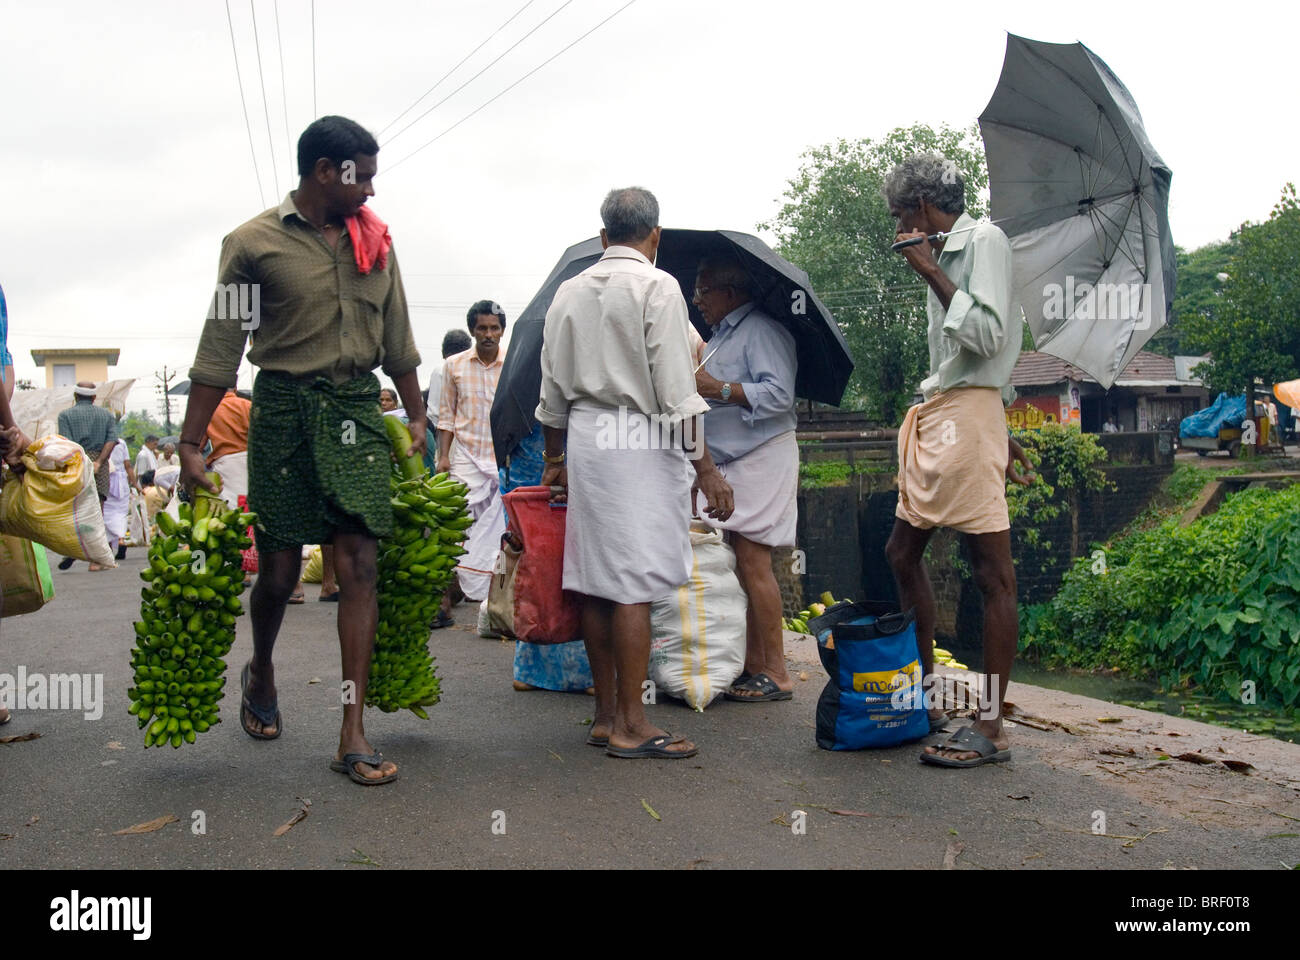 Market at Thalayolaparambu, Kerala, South India, India, Asia. - Stock Image